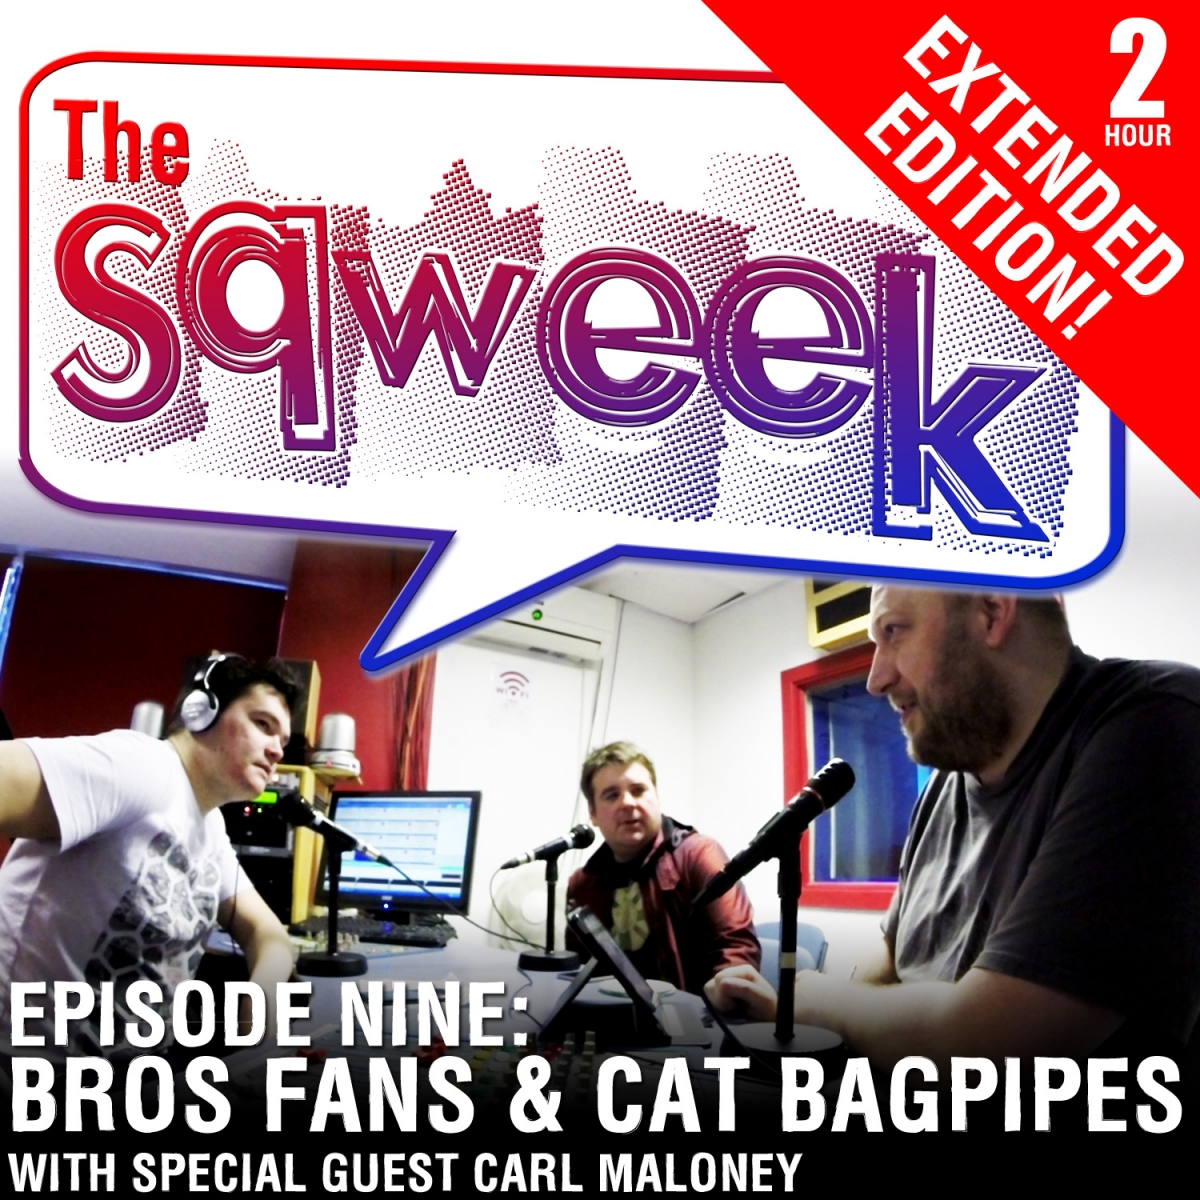 The Sqweek Episode 9: Bros Fans and Cat Bagpipes